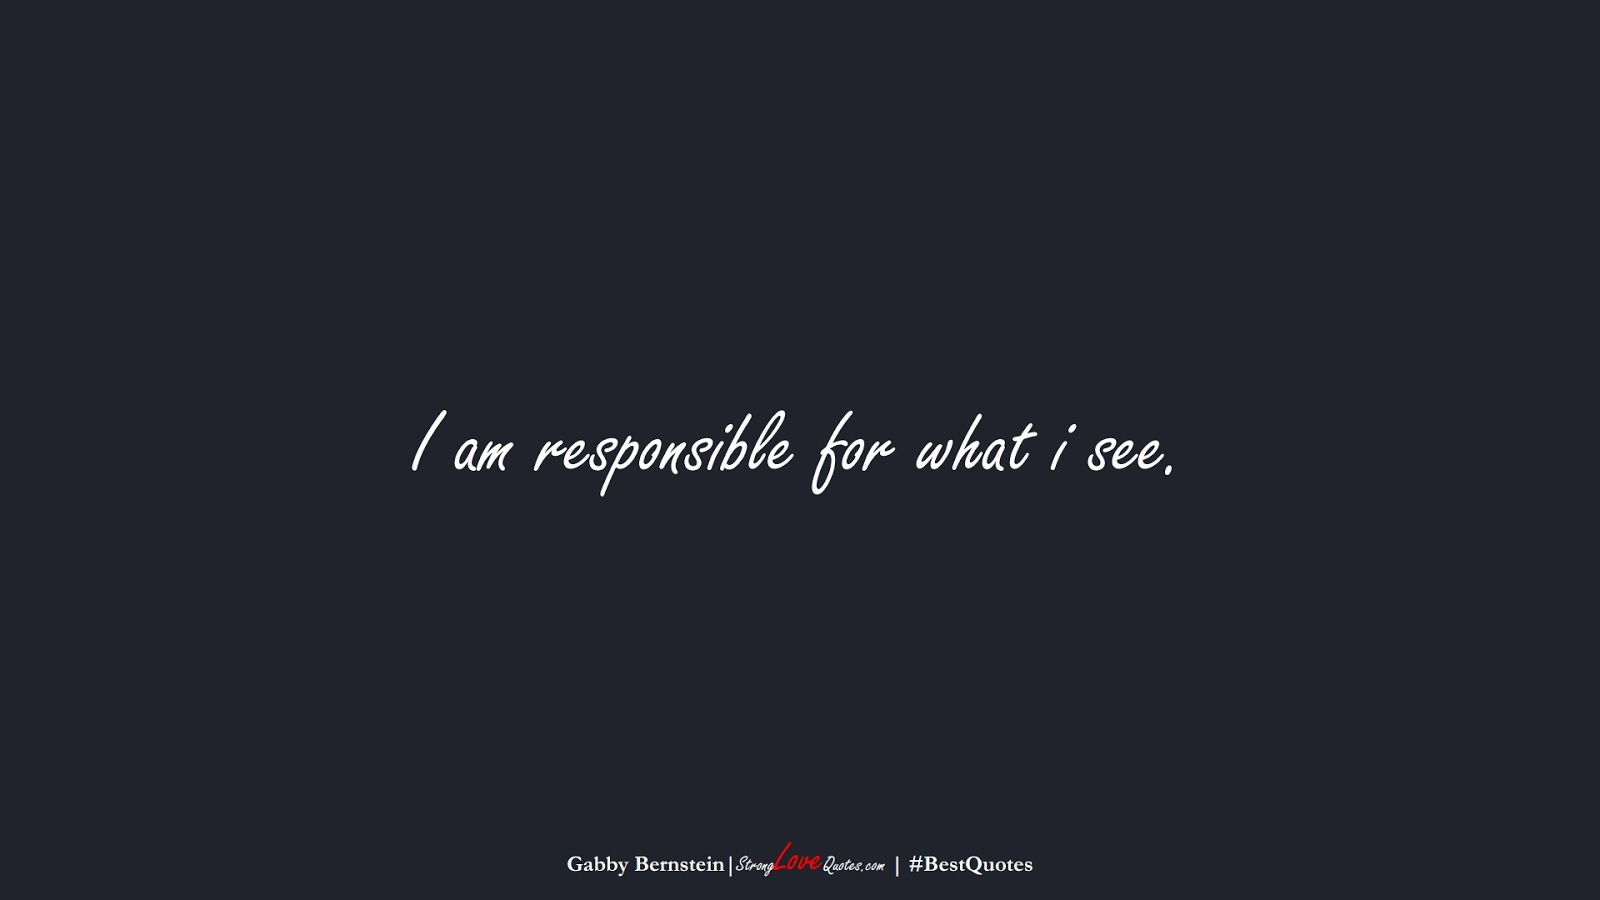 I am responsible for what i see. (Gabby Bernstein);  #BestQuotes